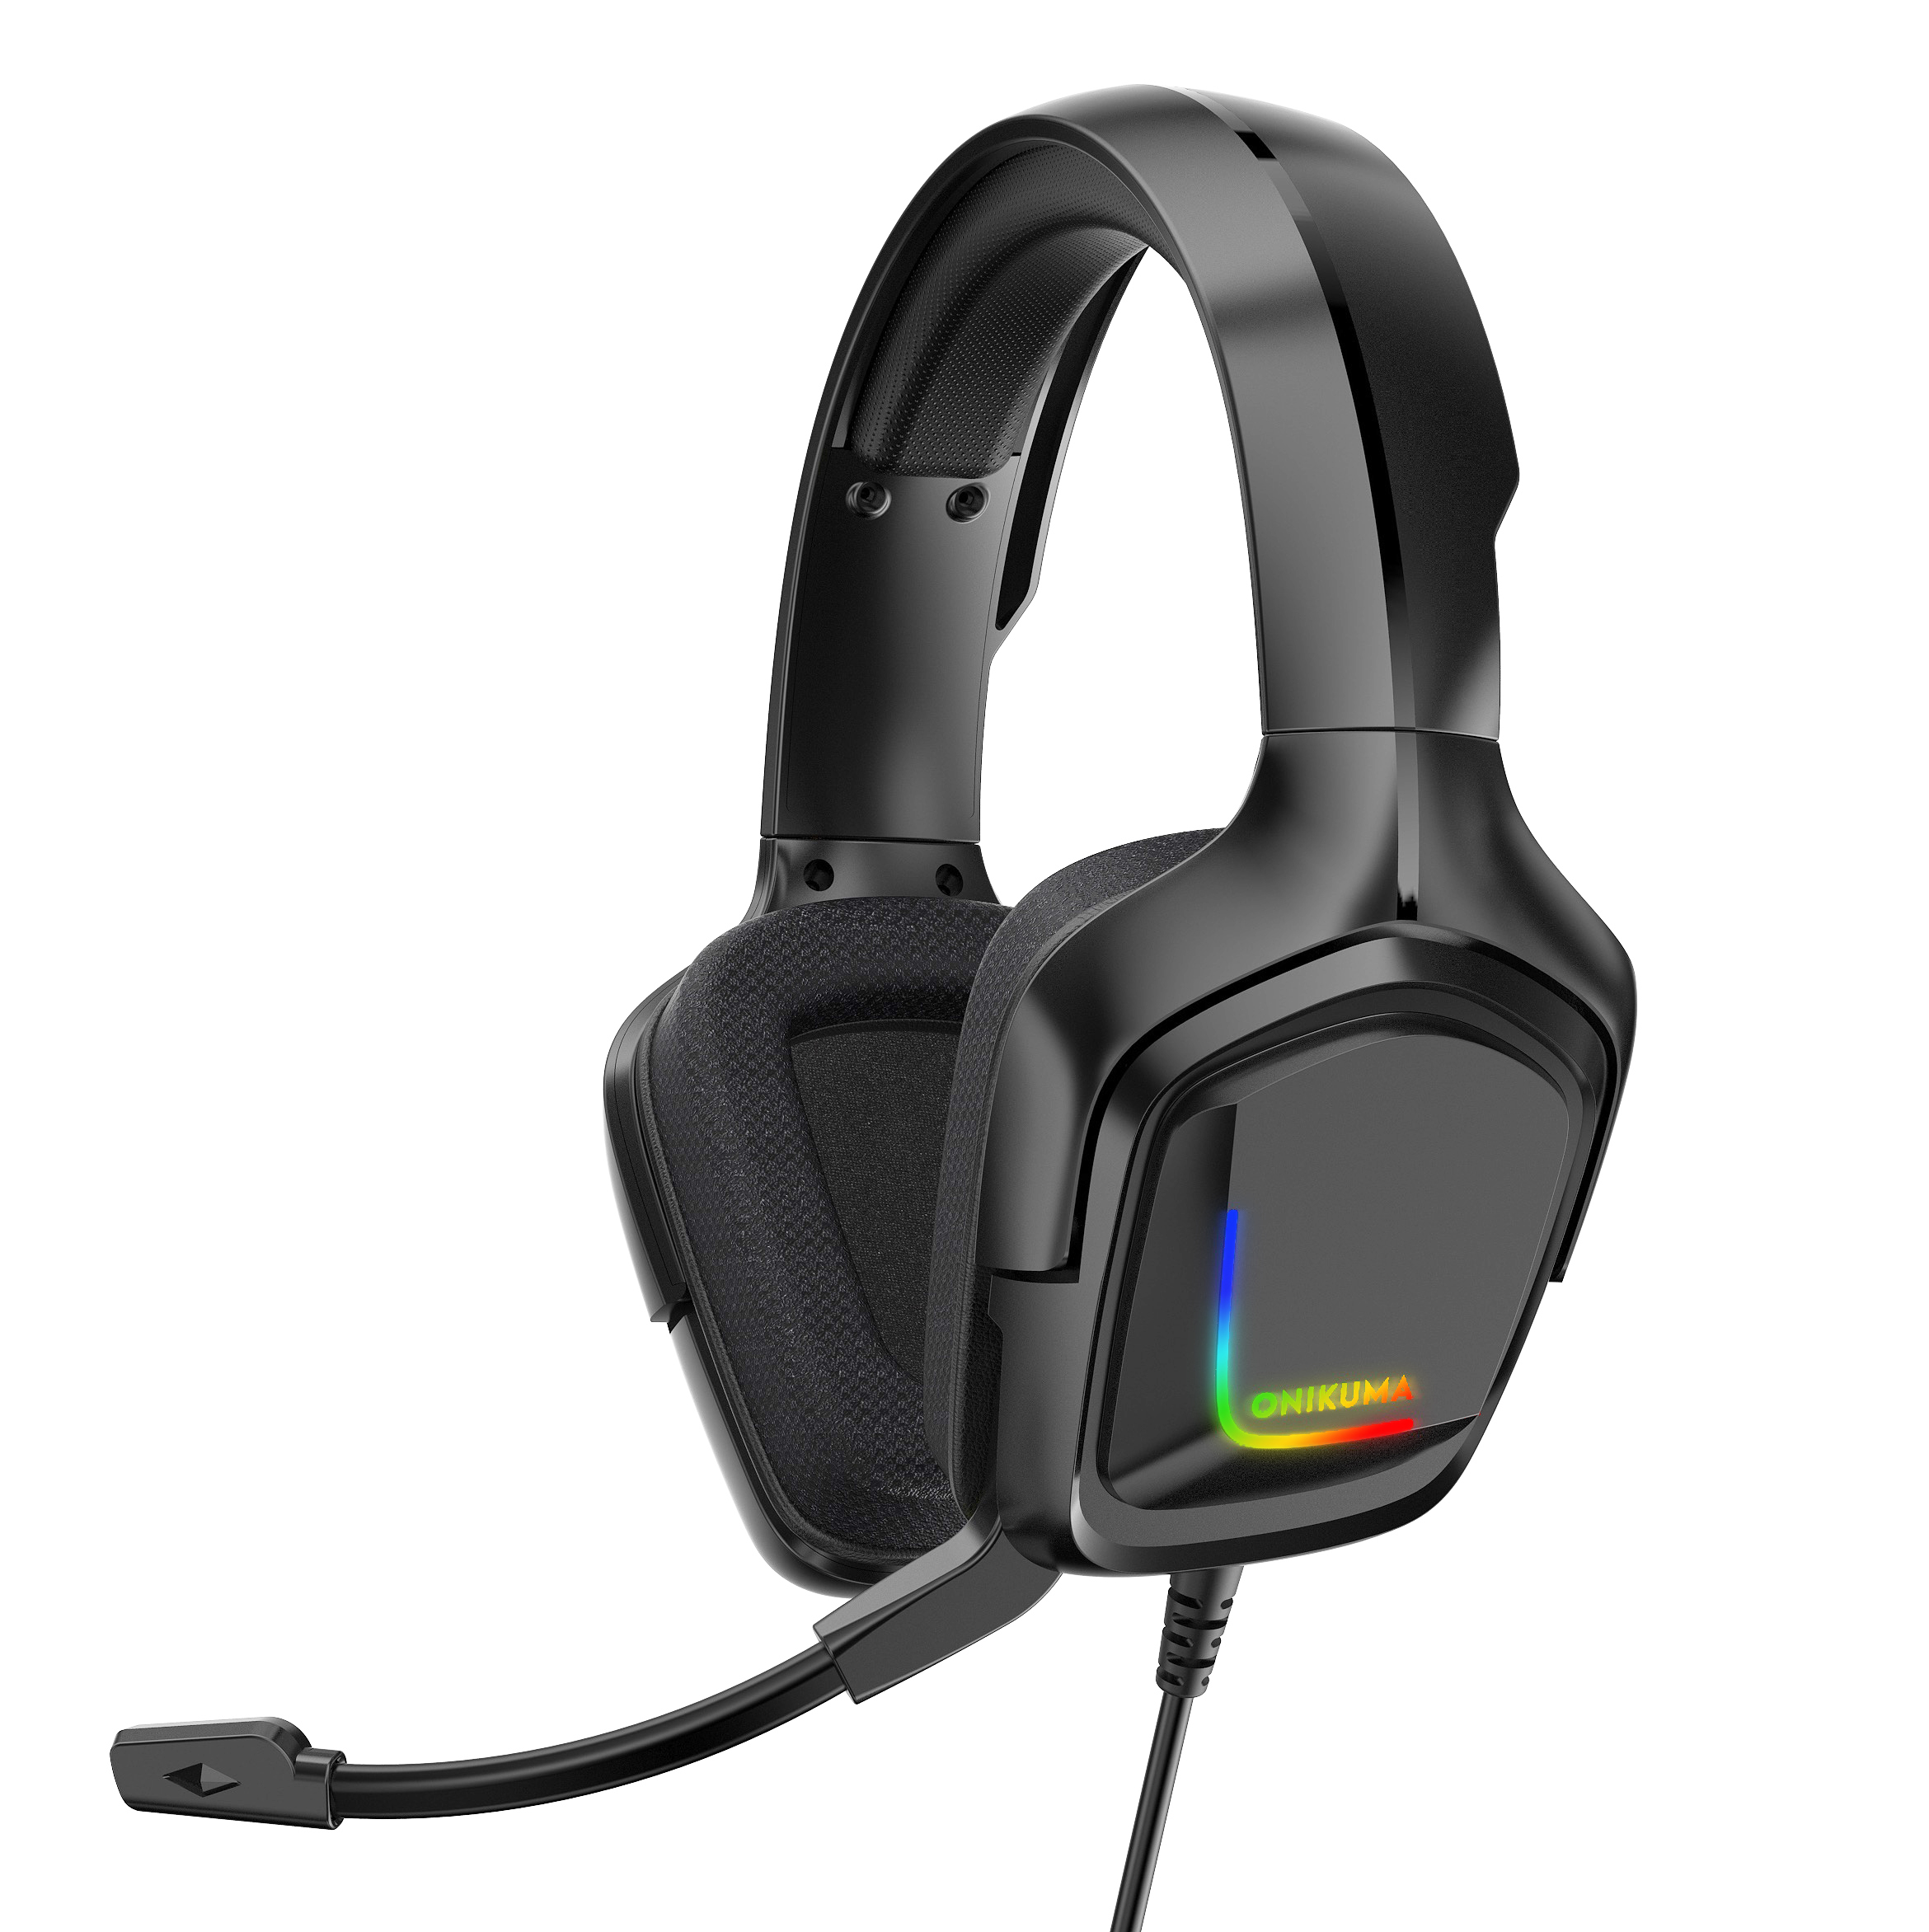 K20 Gaming  Headset Rgb Desktop Computer Eating Chicken Game Headset With Microphone black